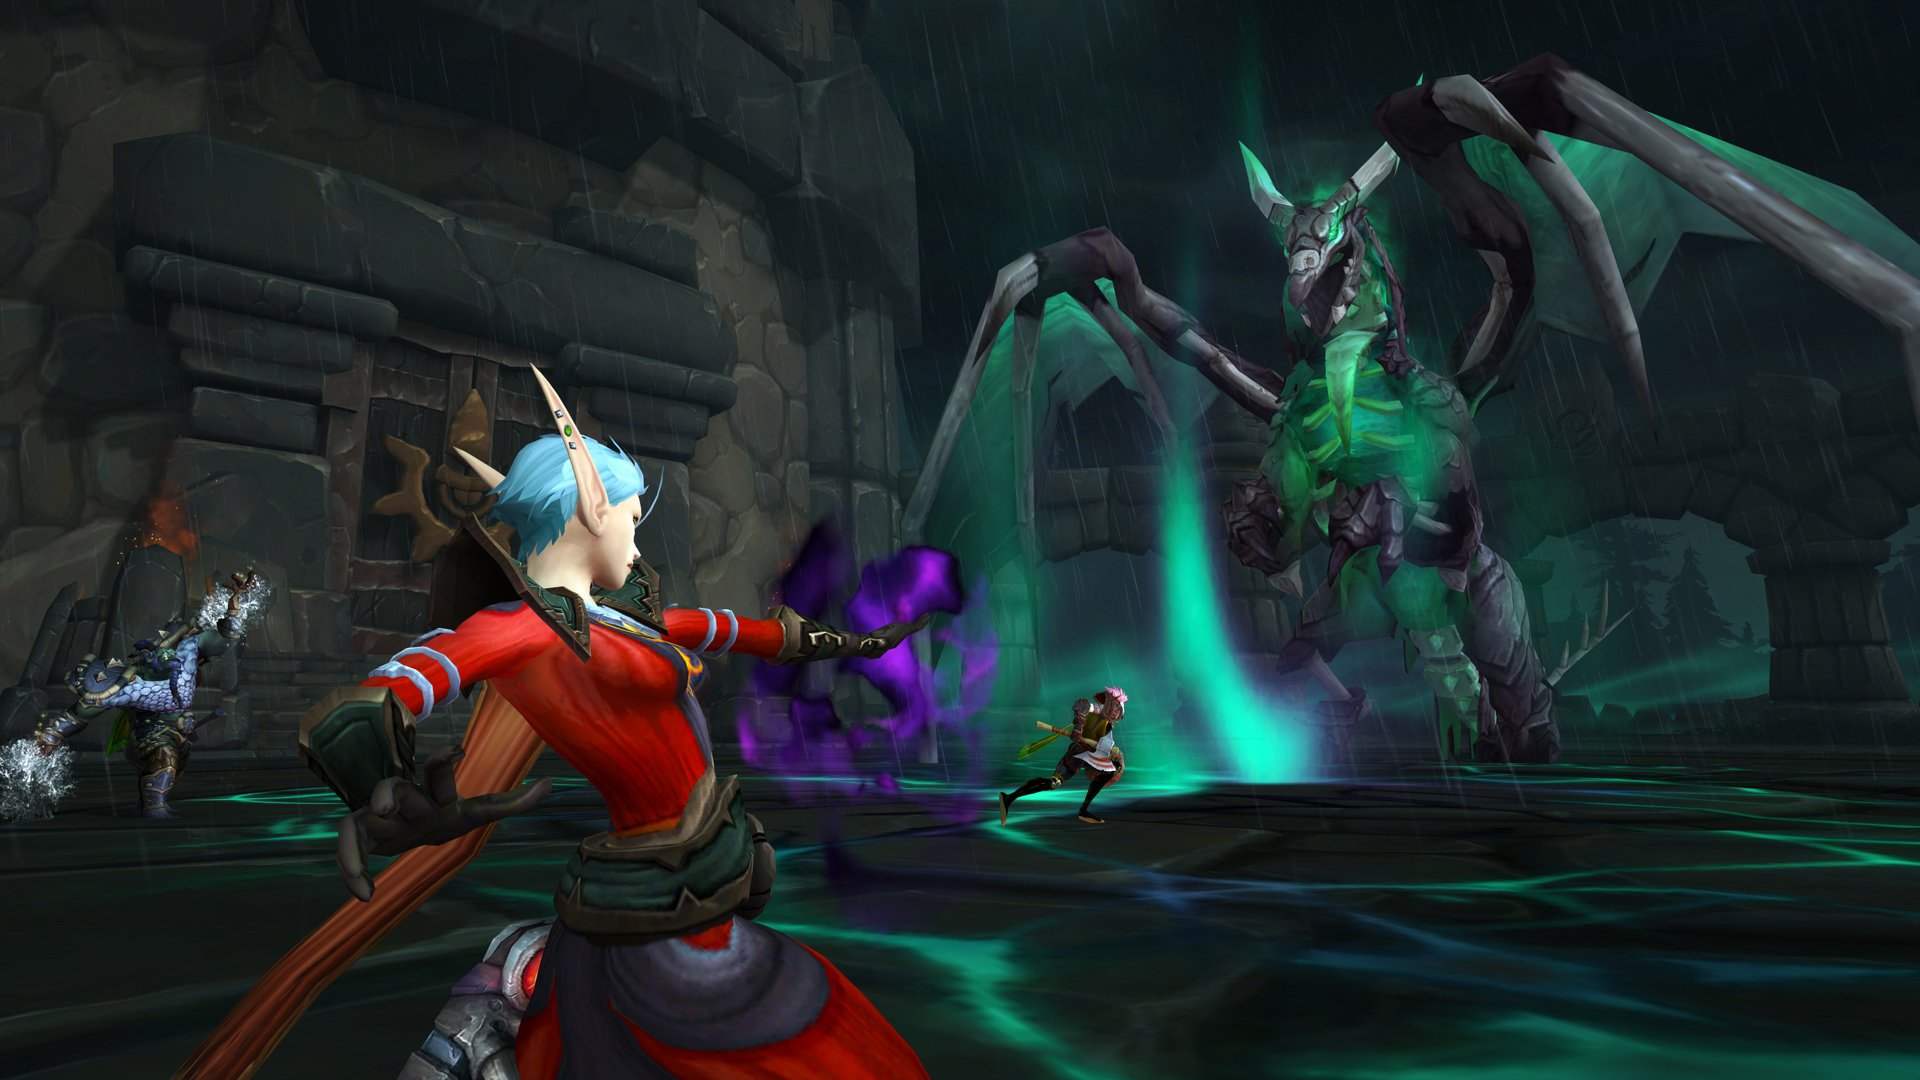 World of Warcraft: Shadowlands' new release date is November 23 and the pre-launch event starts Nov. 10 screenshot